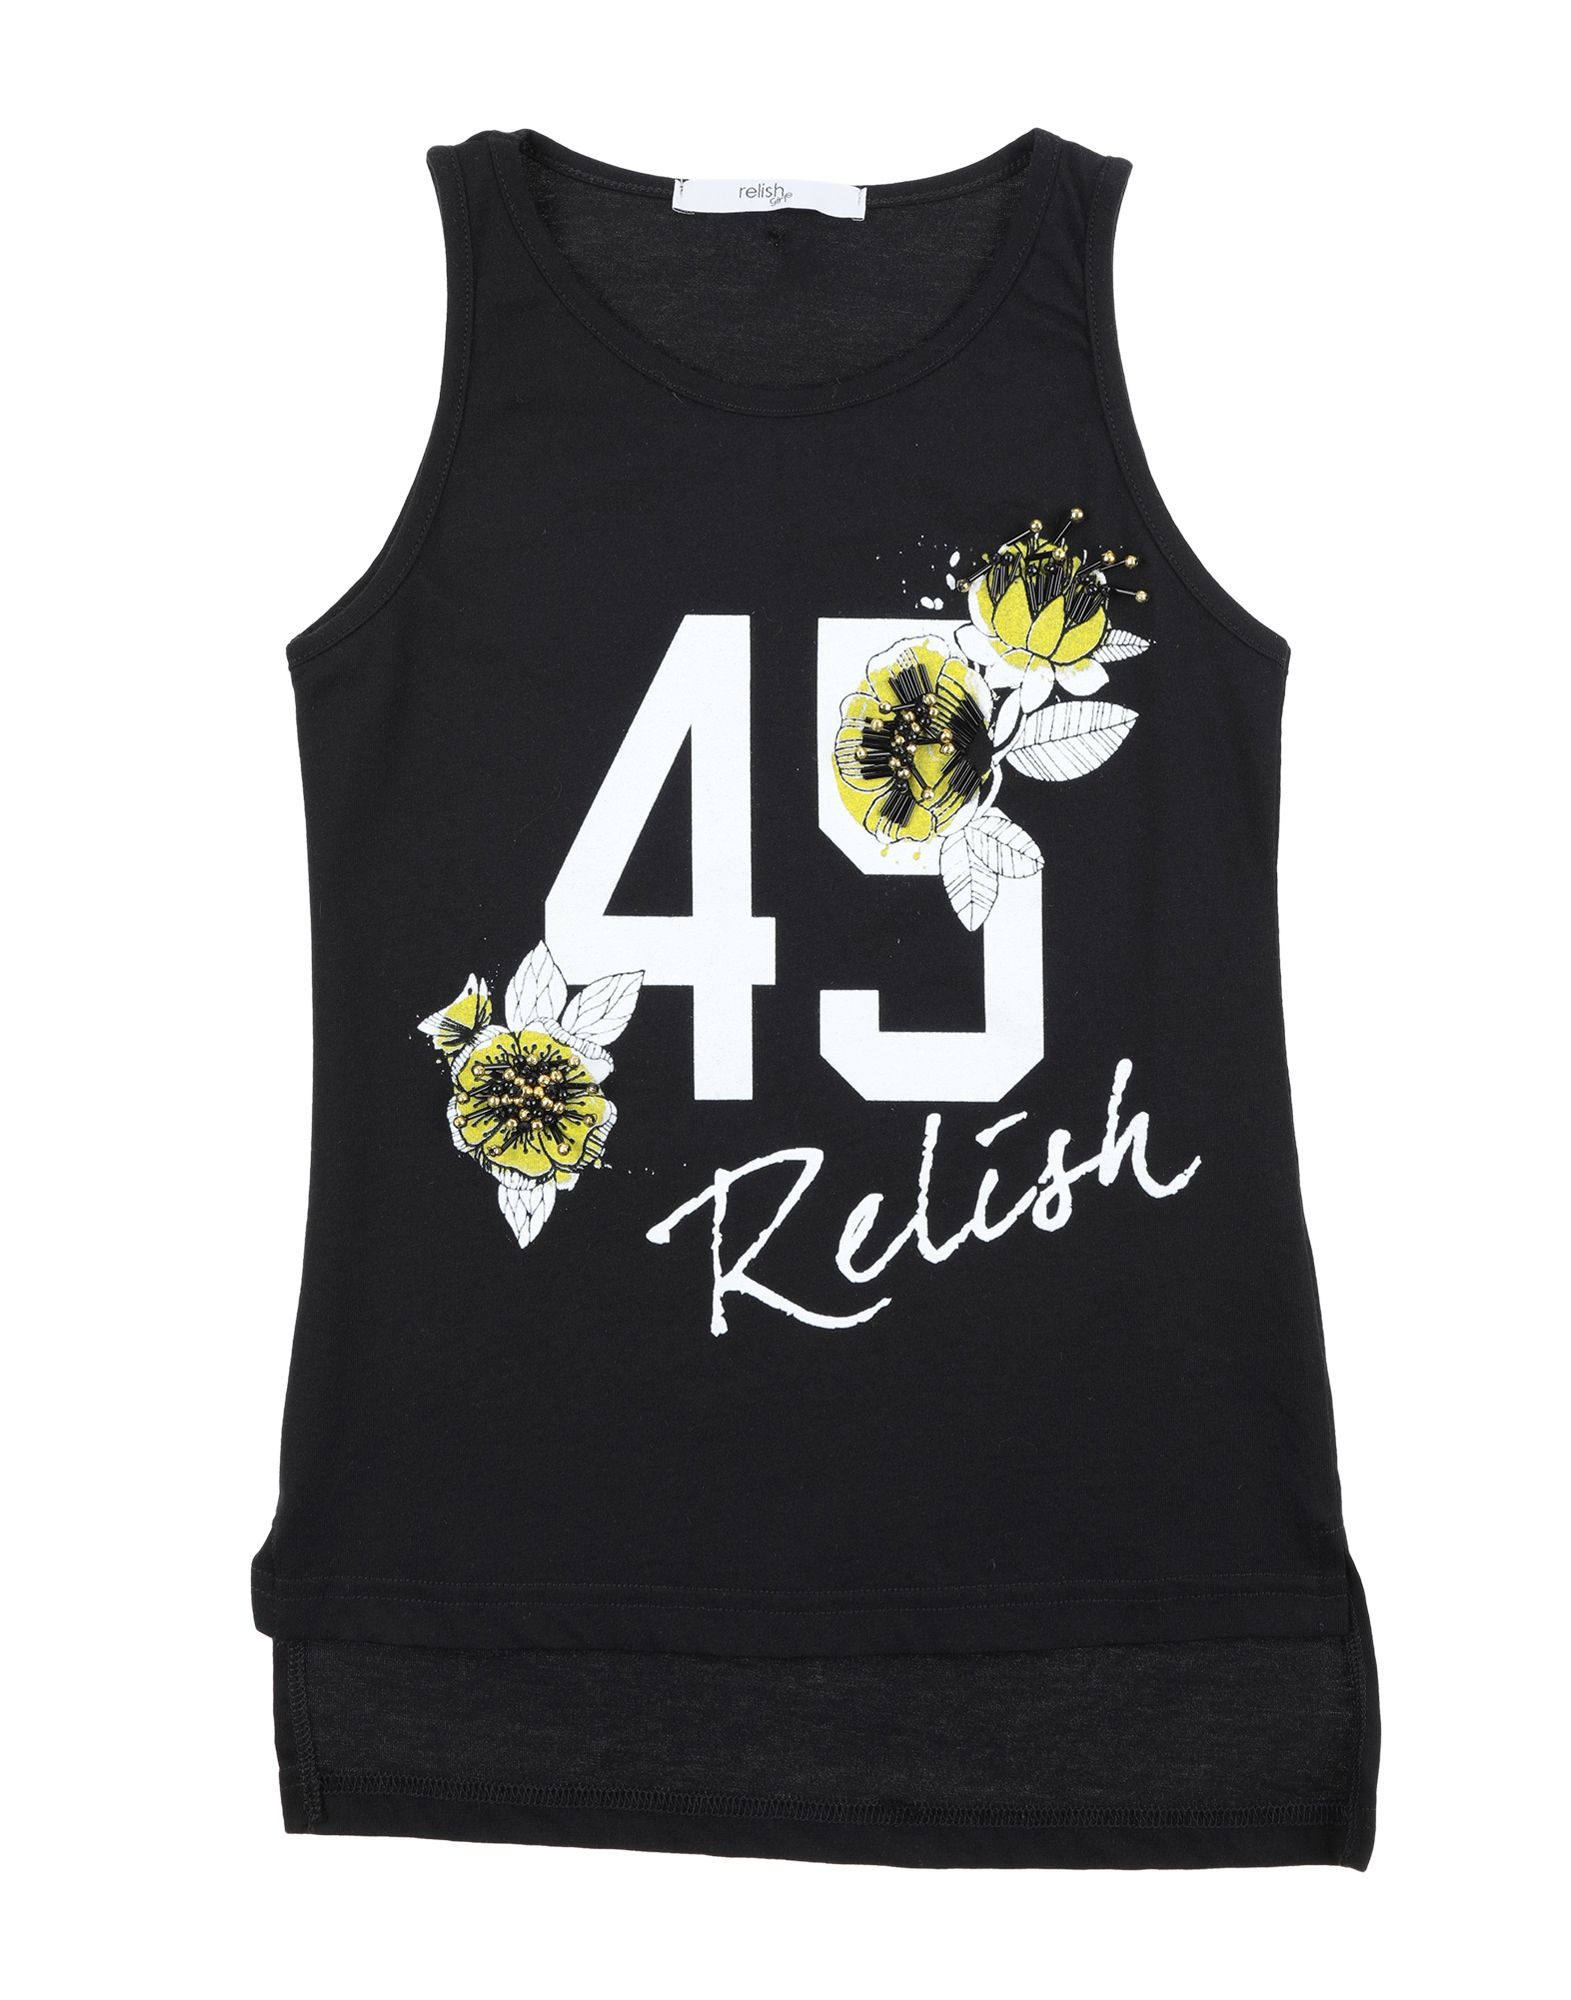 Relish Kids' T-shirts In Black